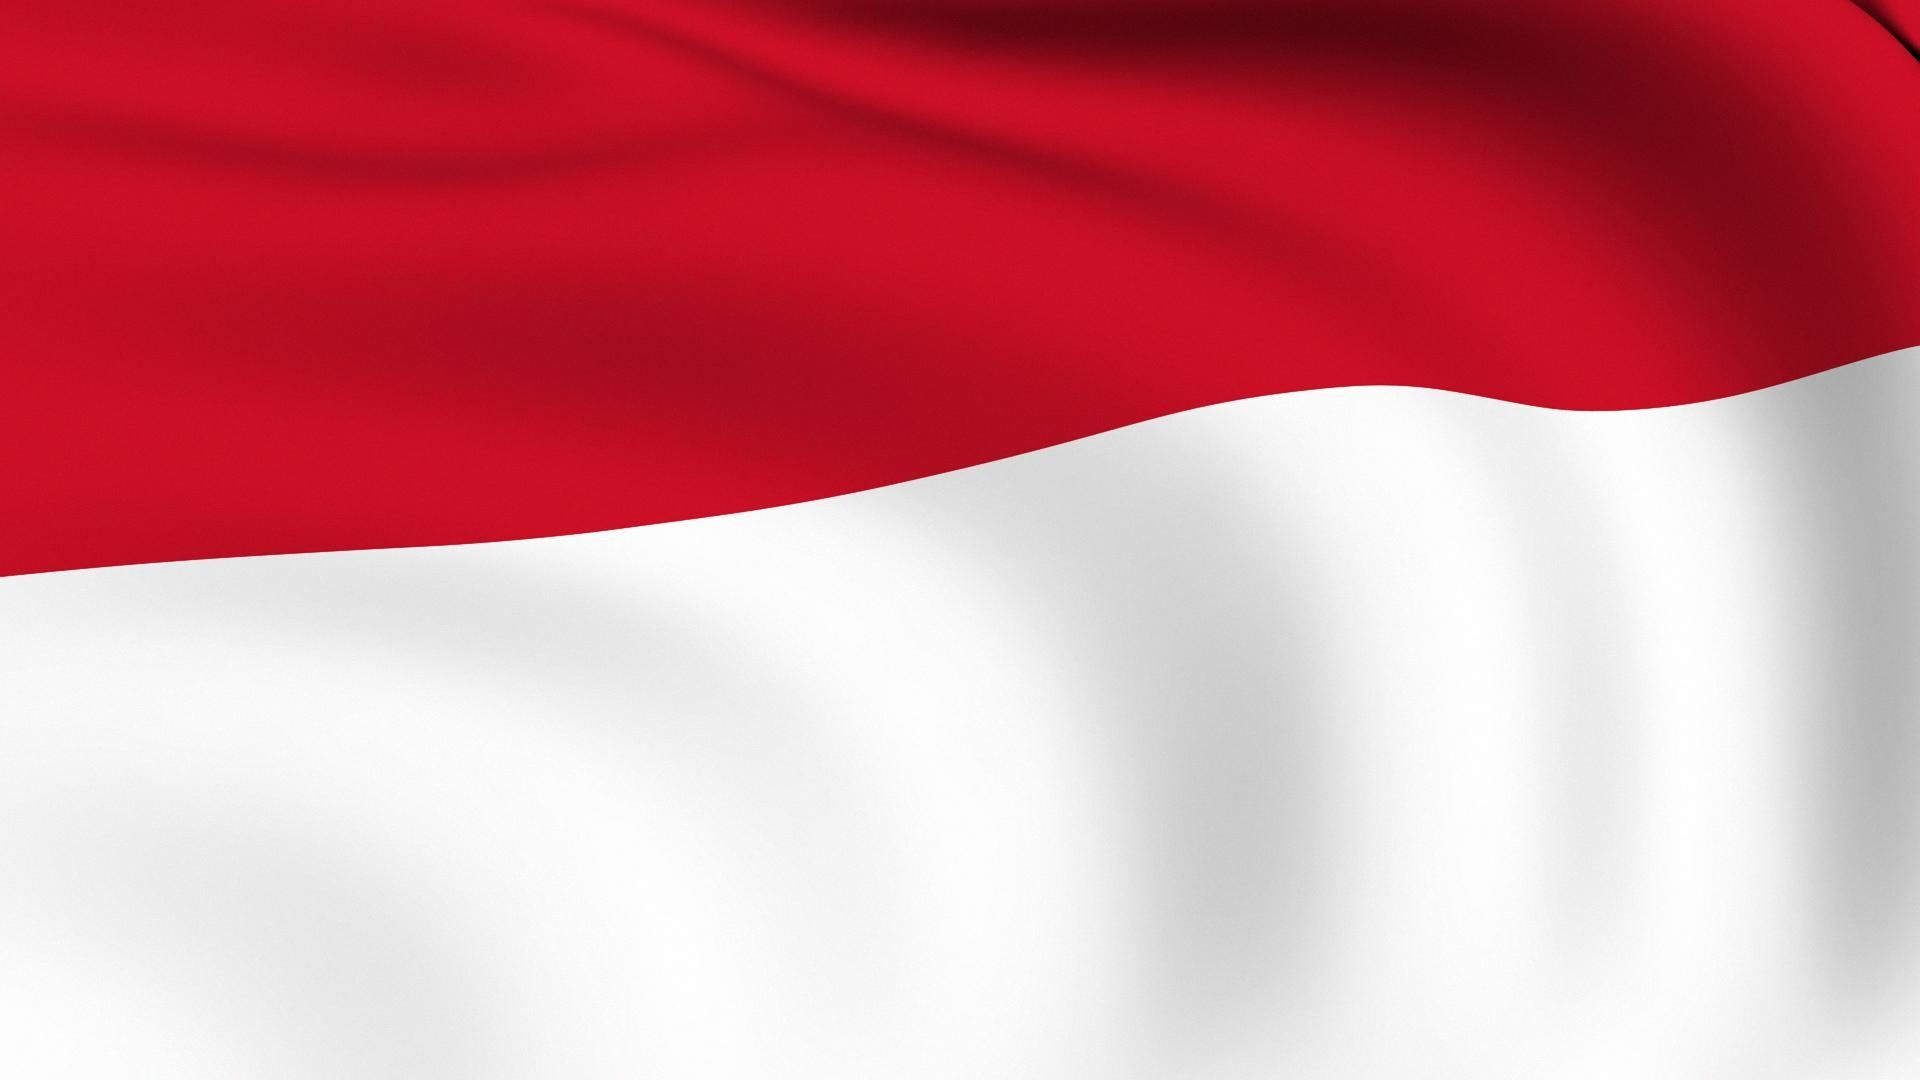 indonesian flag indonesia flags wallpaper 1920x1080 515144